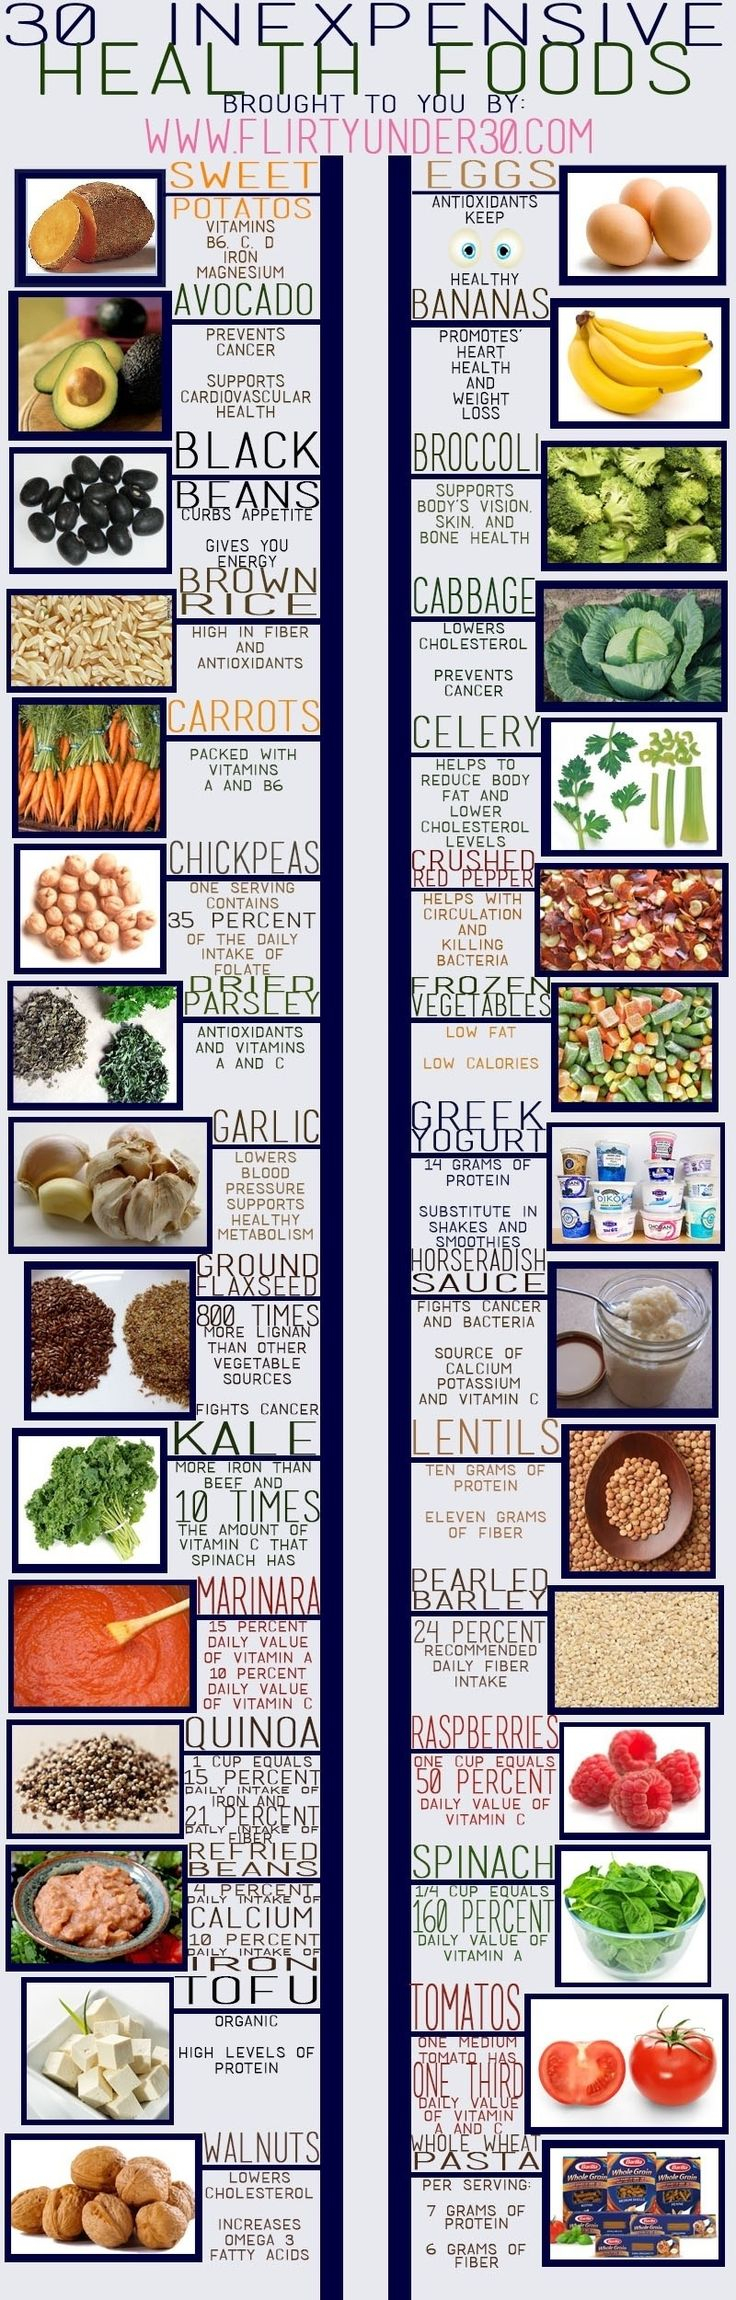 Without a doubt, eating well and heathy is very essential to keep your body fresh, energized and in good condition. However, some times, food that is considered to be healthy can be a little bit unreasonable in terms of price. Here is a list of 30 food items that are amazingly healthy as well as inexpensive, so it's a win-win situation! Check it out: Infographic by –Flirty Under 30